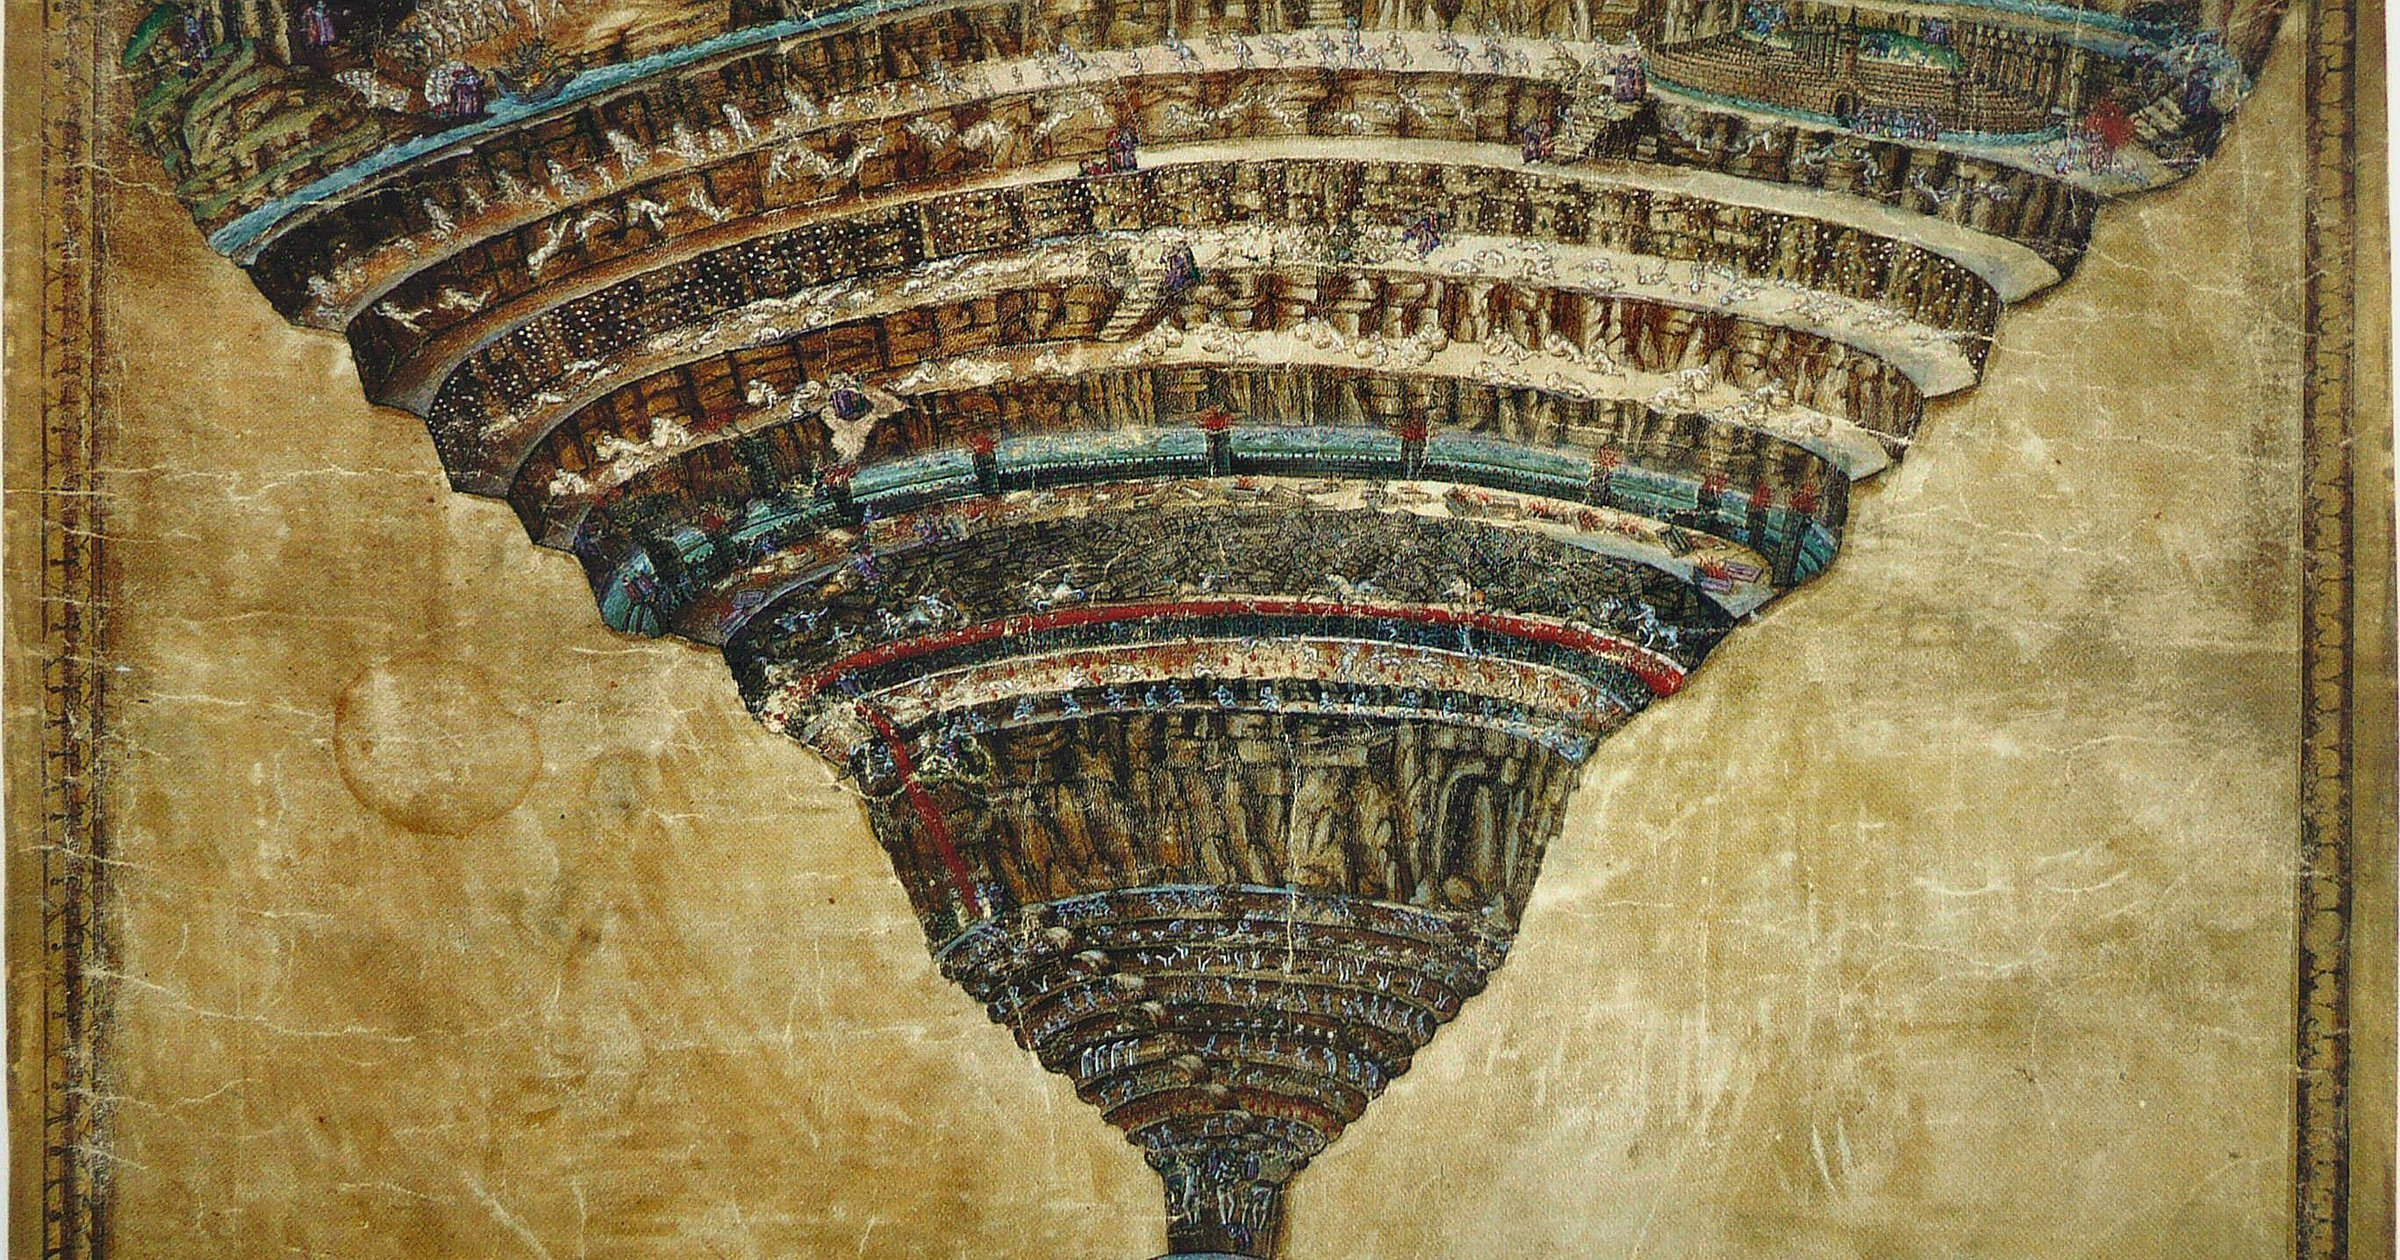 Real people sentenced to Dante's hell